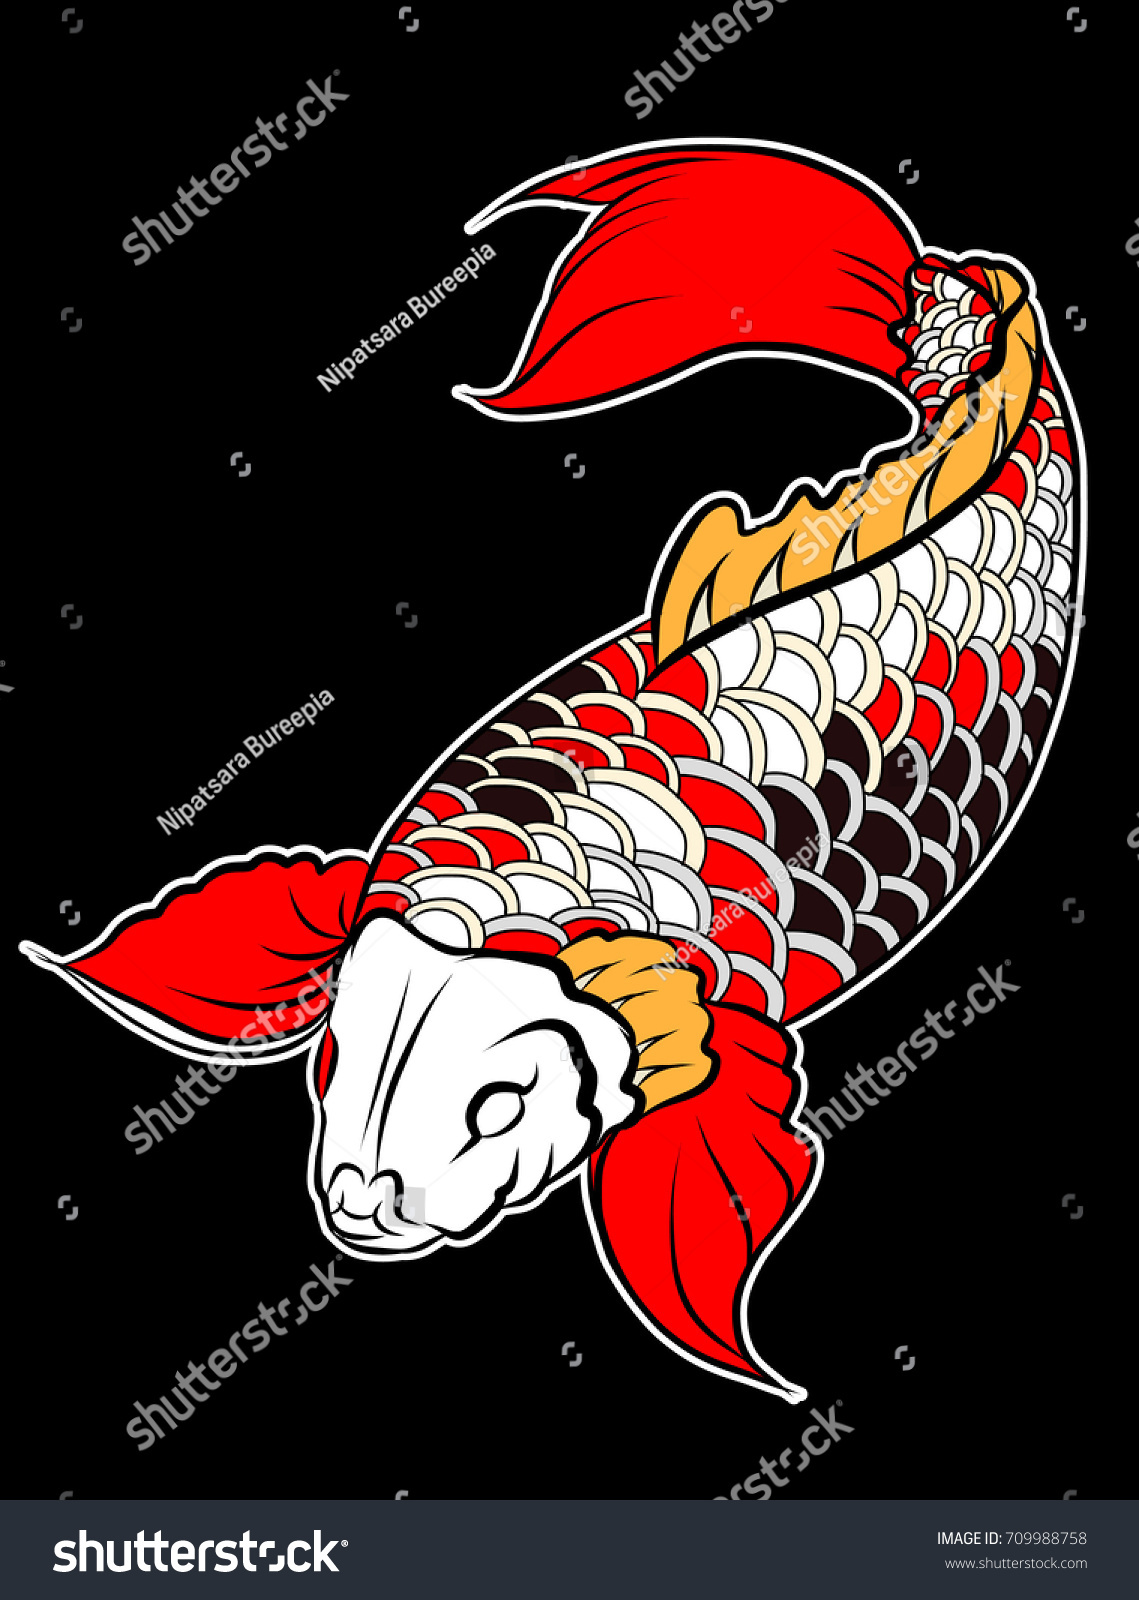 Sticker Colorful Koi Fish Water Splash Stock Vector 709988758 ...